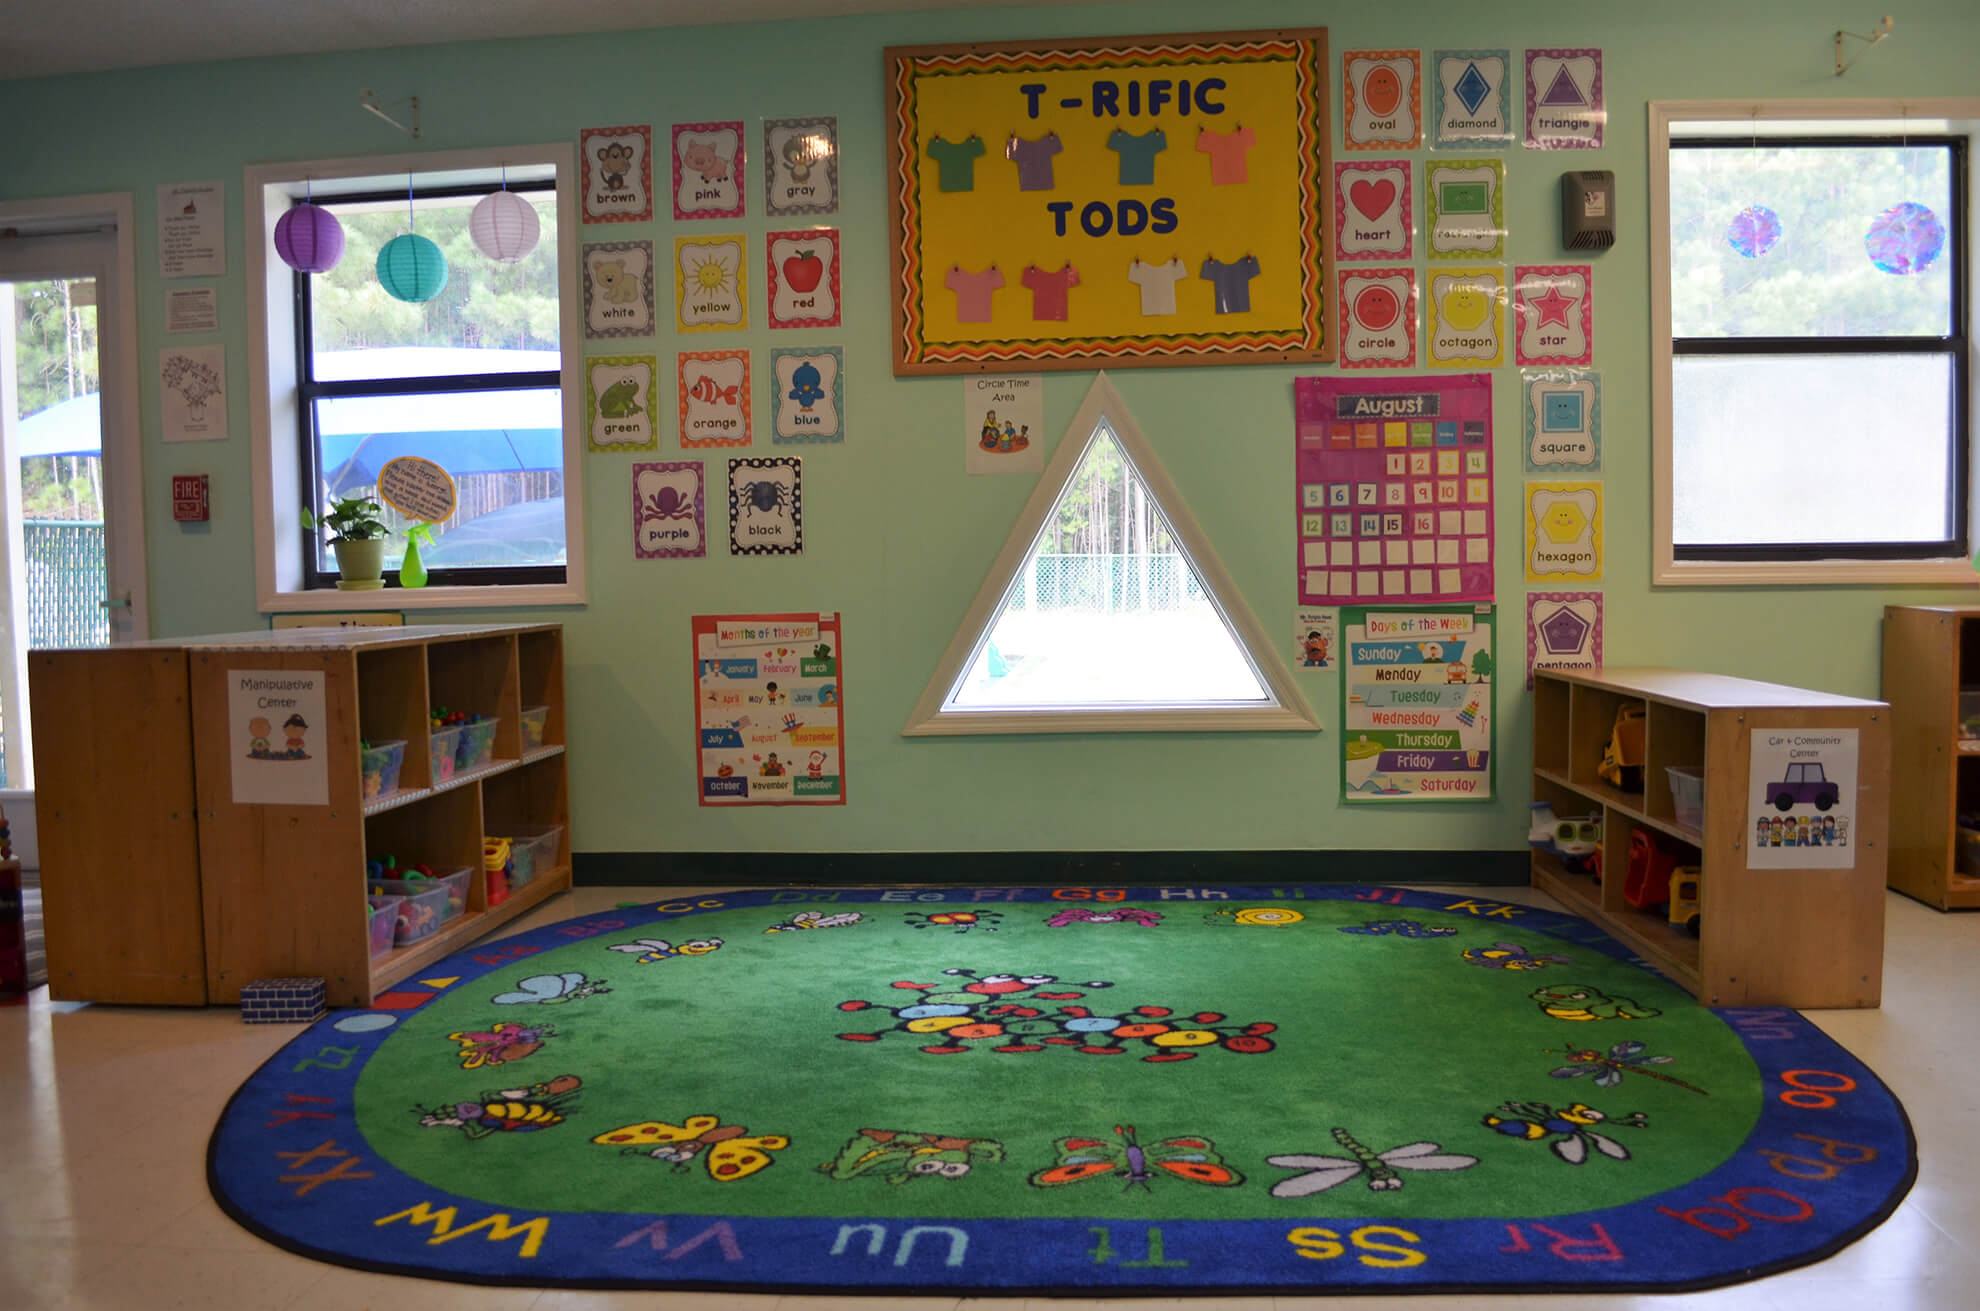 Our Transition Toddler Room